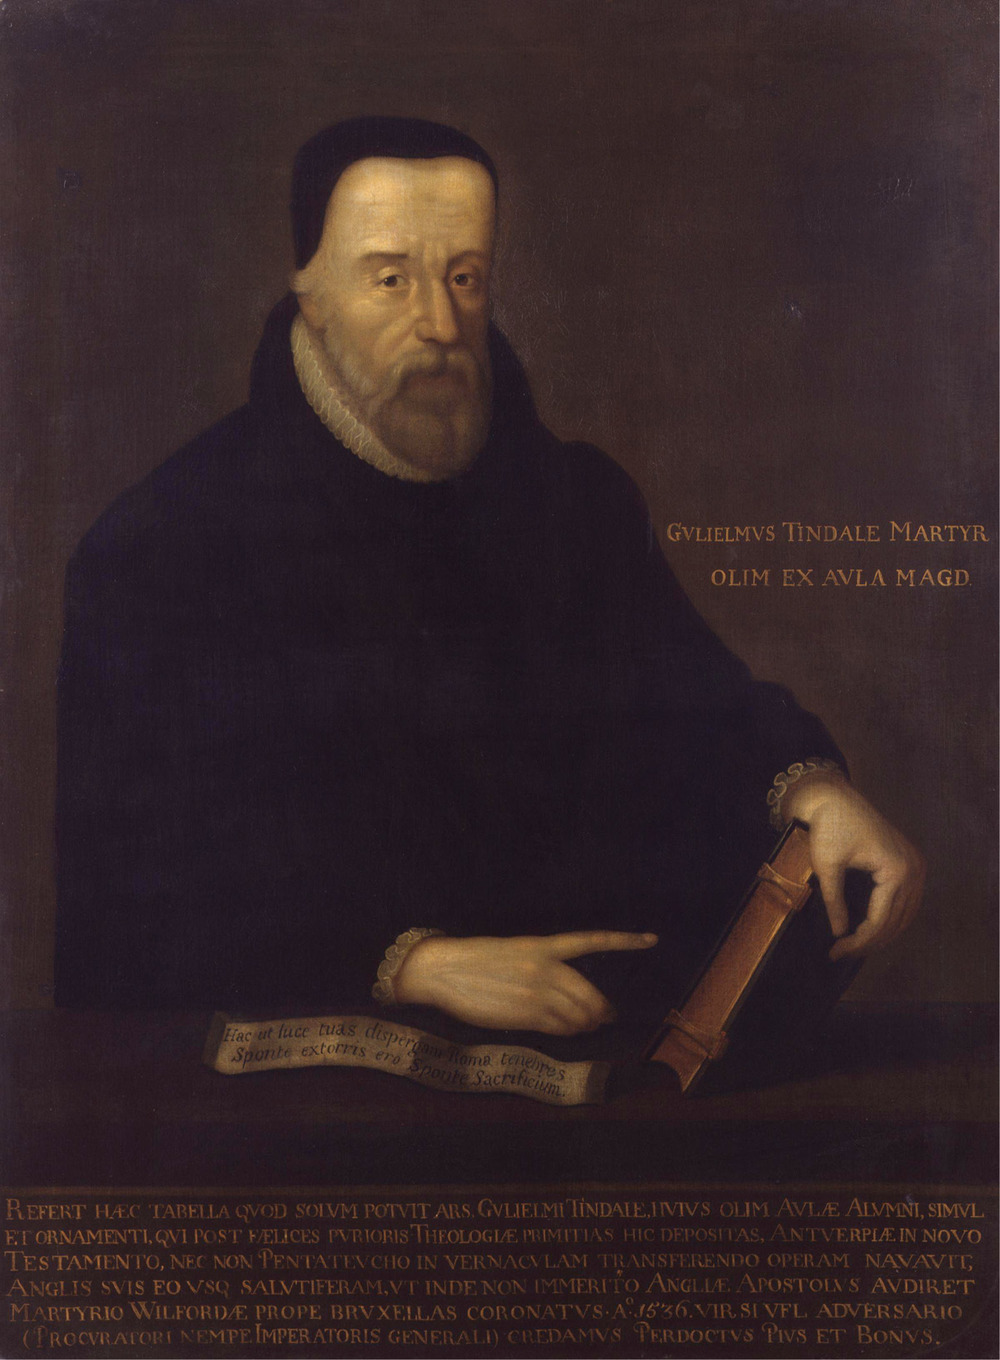 William Tyndale: The Father of the English Bible